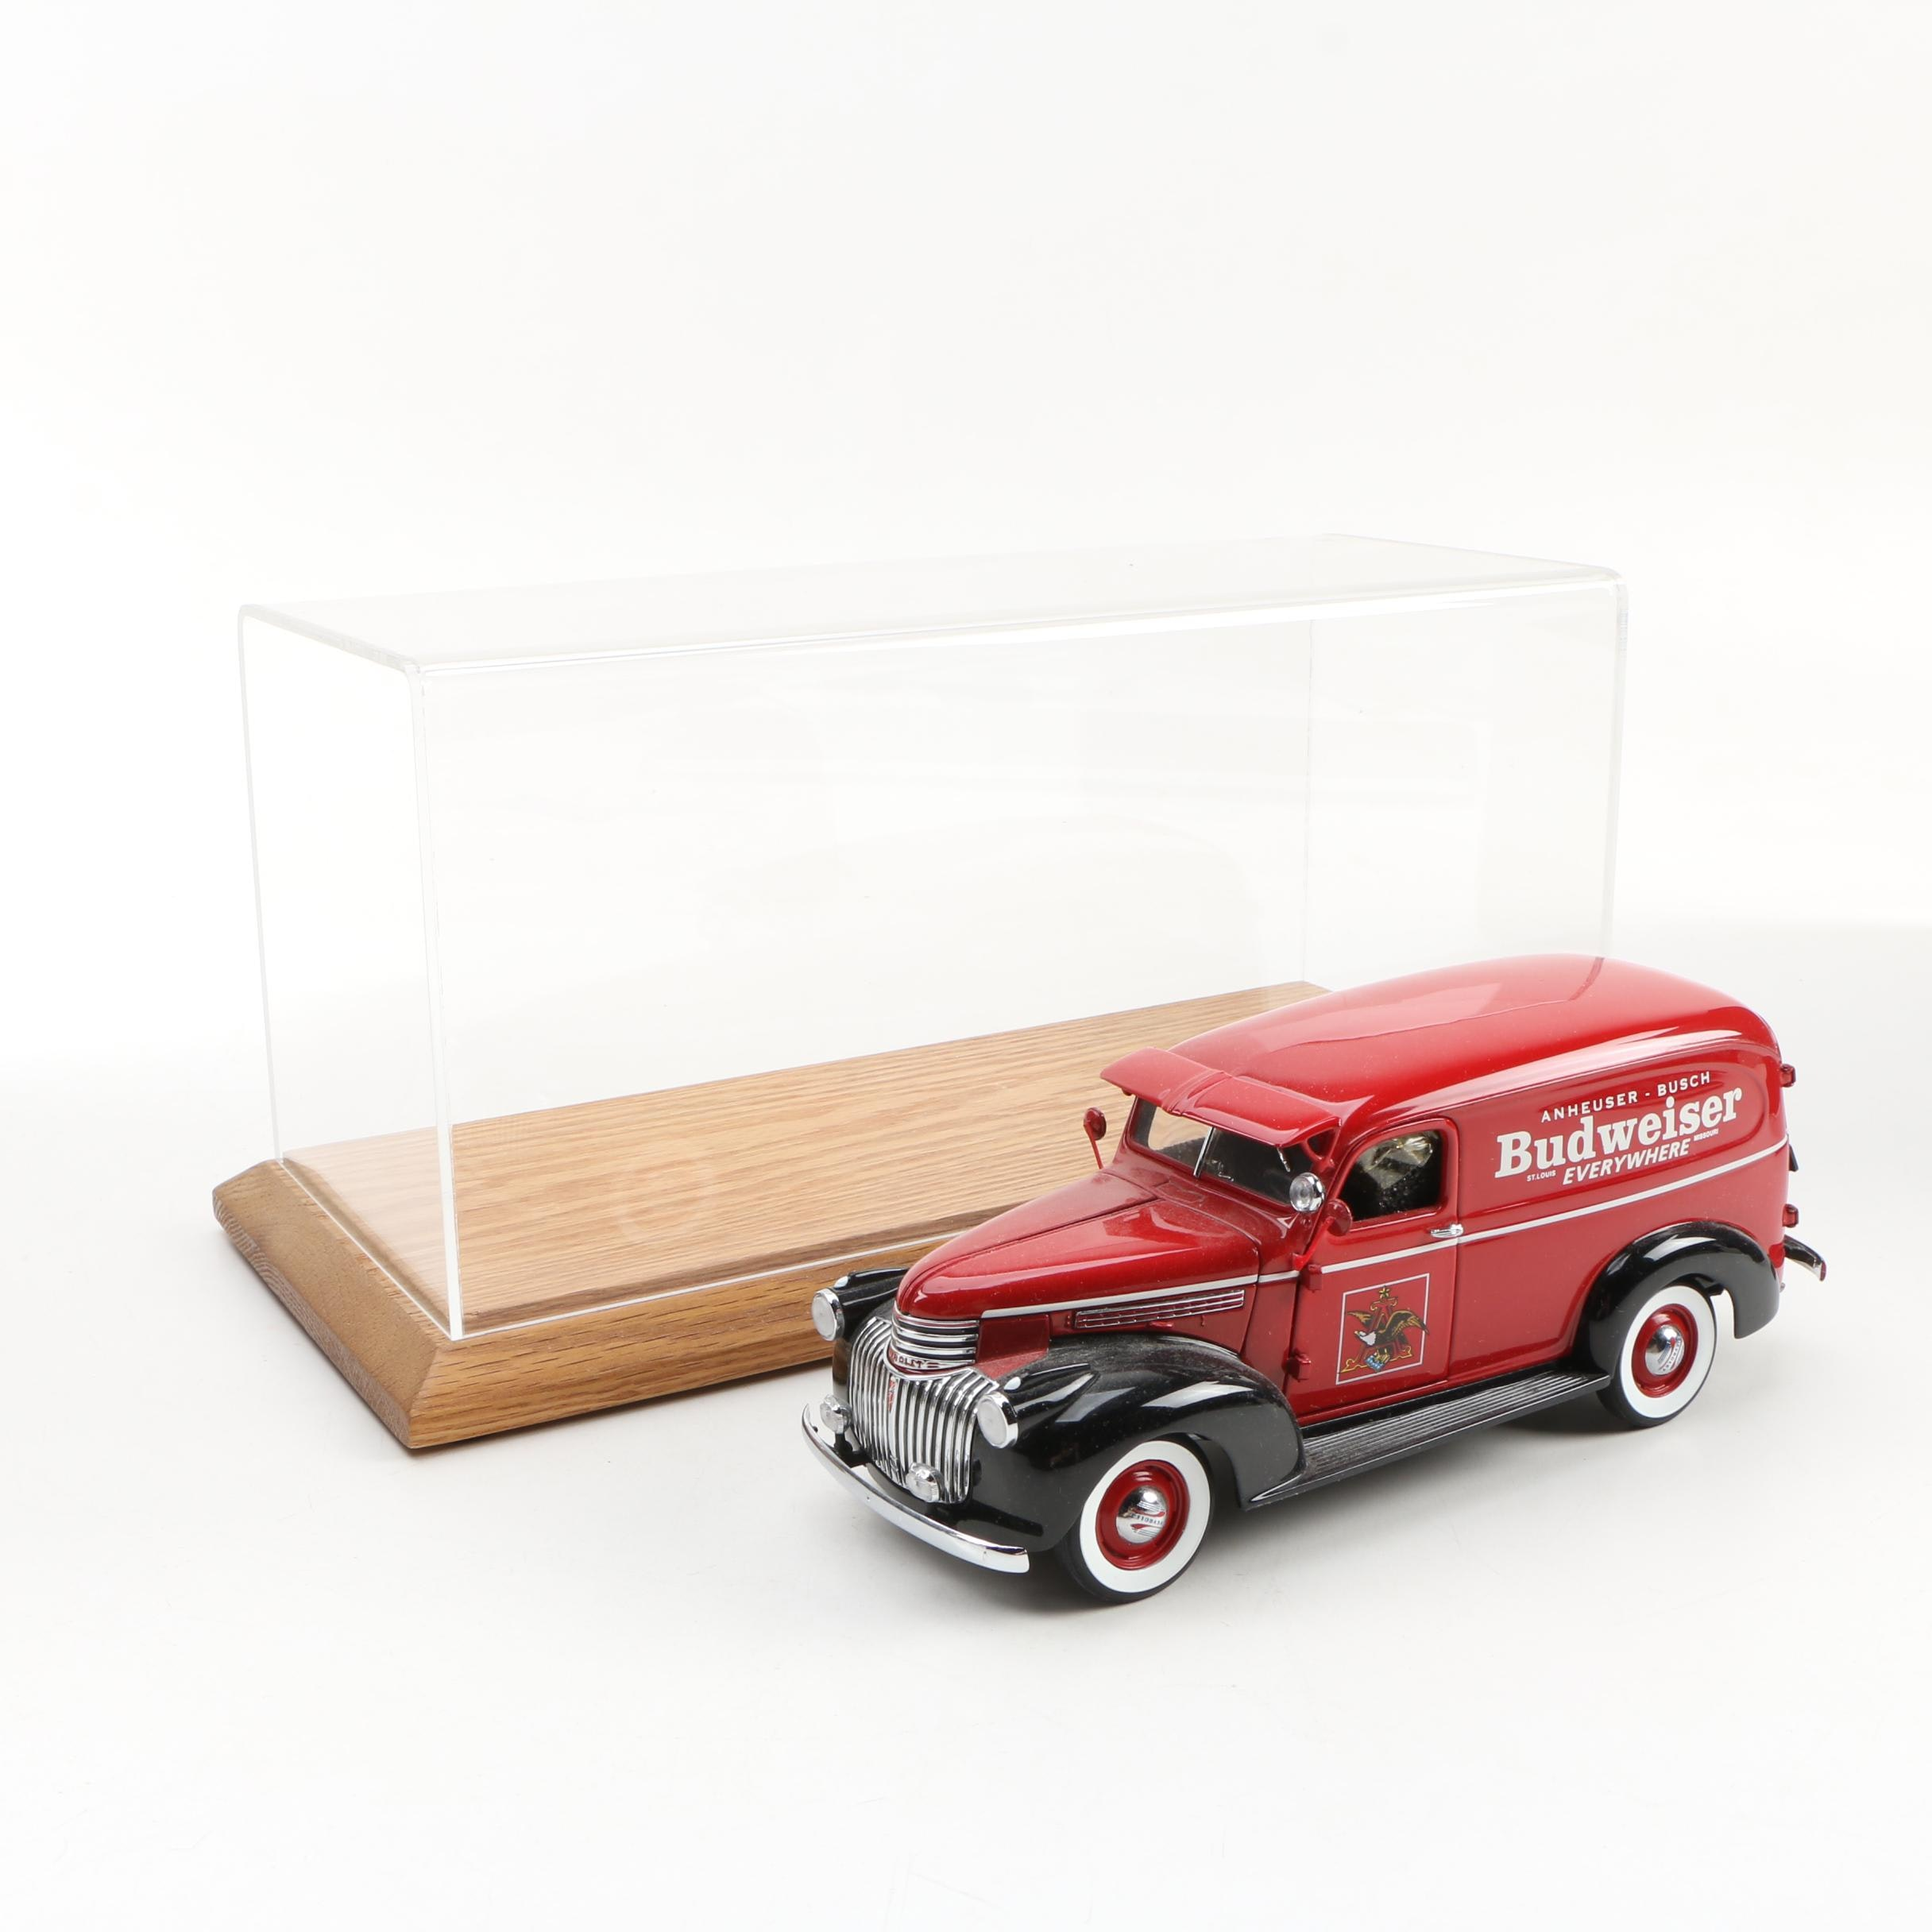 Danbury Mint Die-Cast 1941 Budweiser Delivery Truck with Display Case, 1999